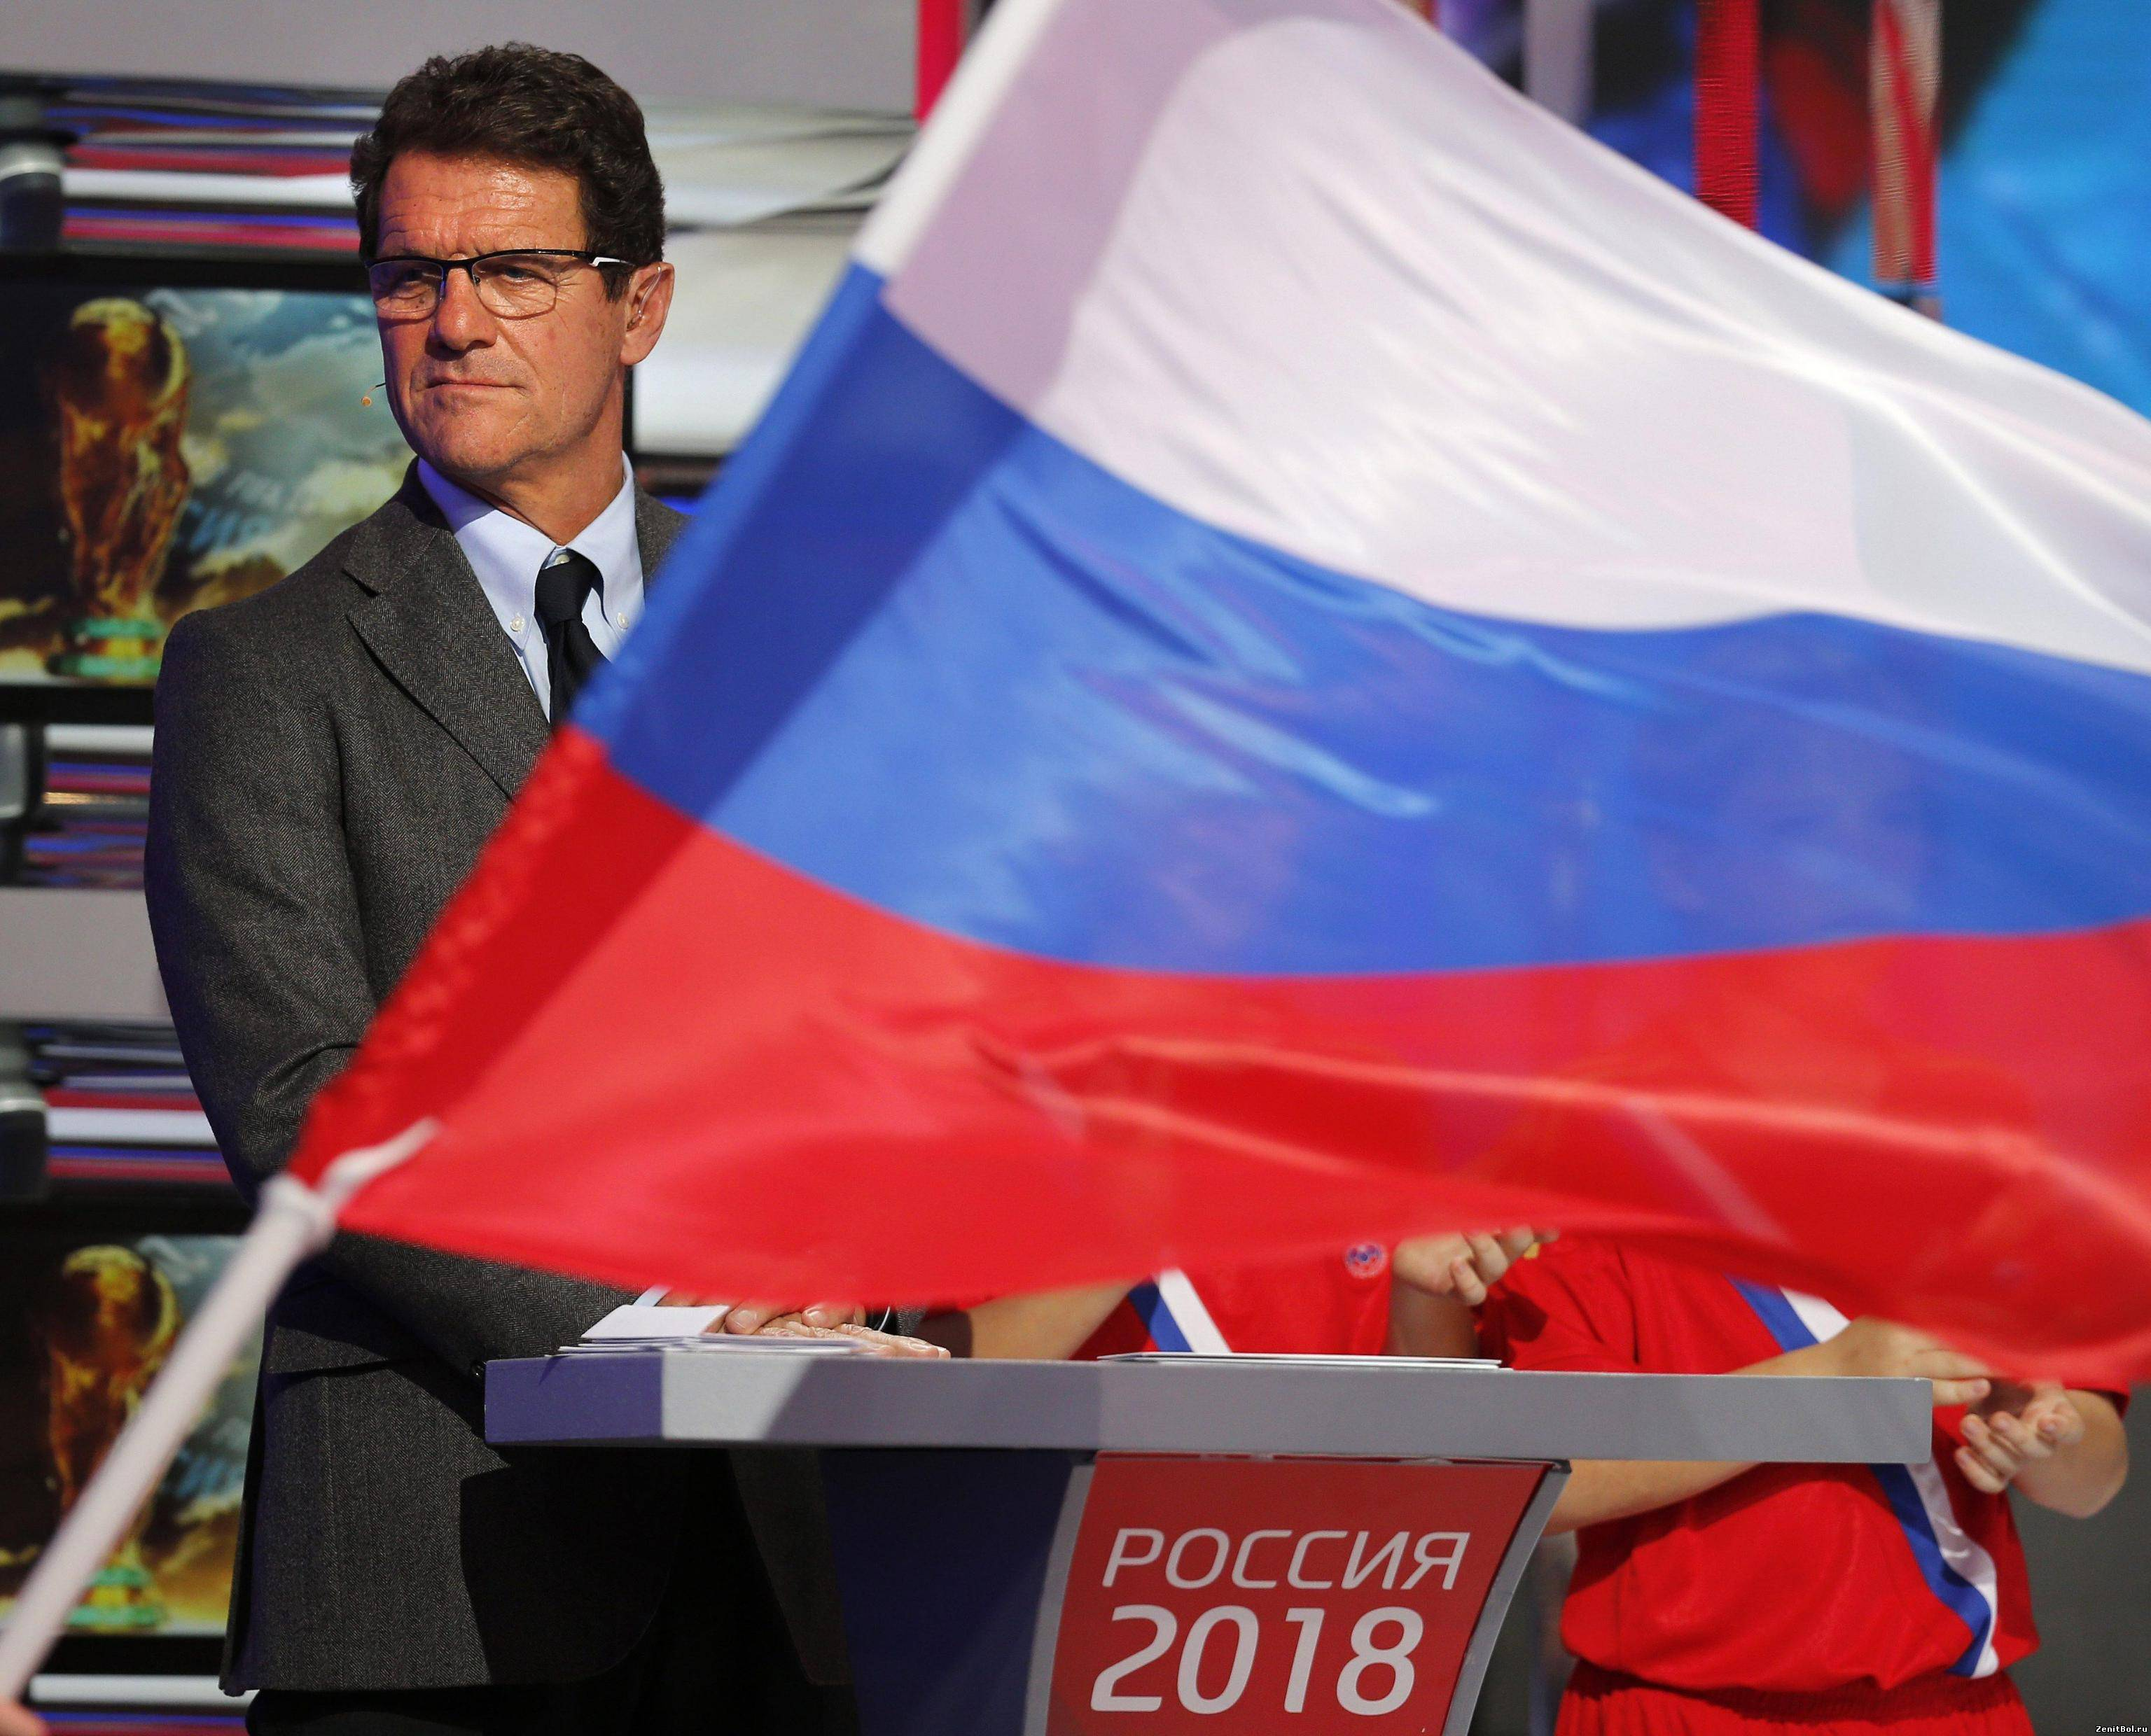 Russia 2018 and her Doomed Four-Year World Cup Plan